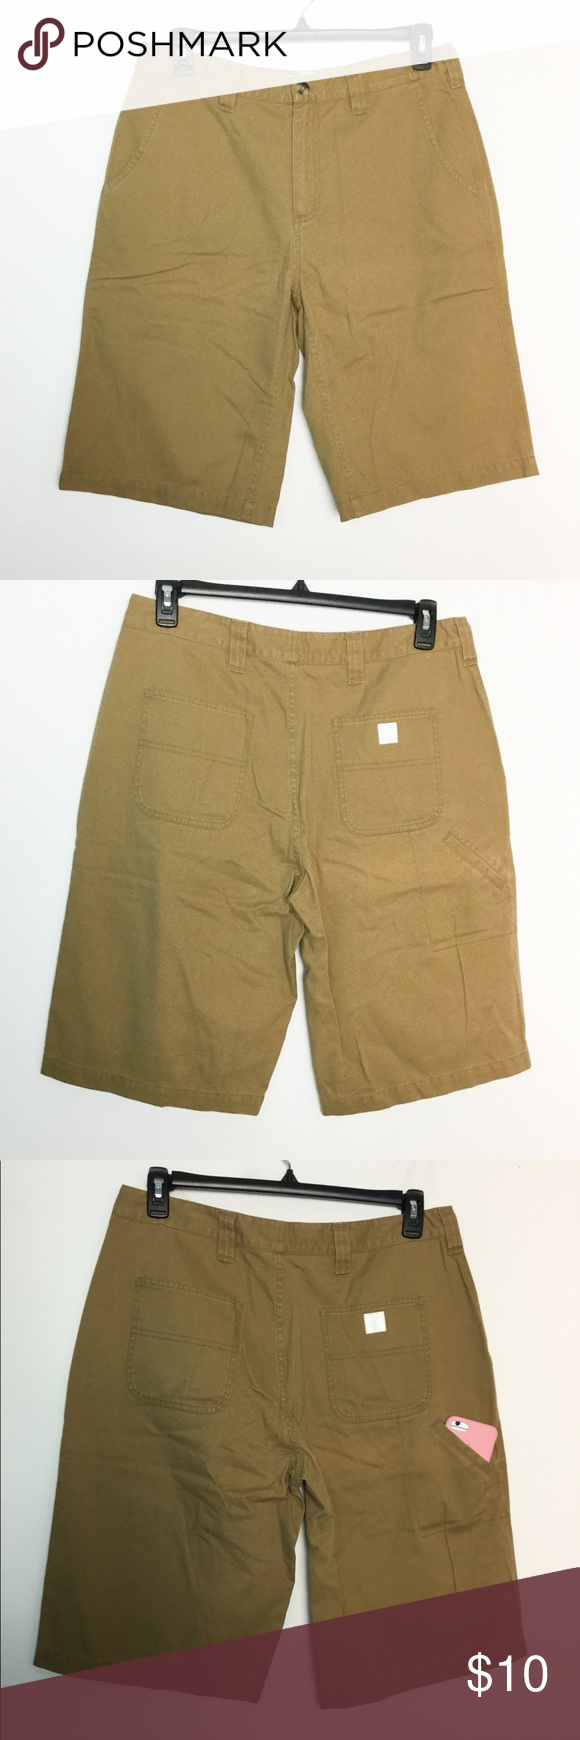 "e1b90a04abd Carhartt 34 Shorts Rugged Flex 13"" Rigby Khakis NWOT New Without ..."